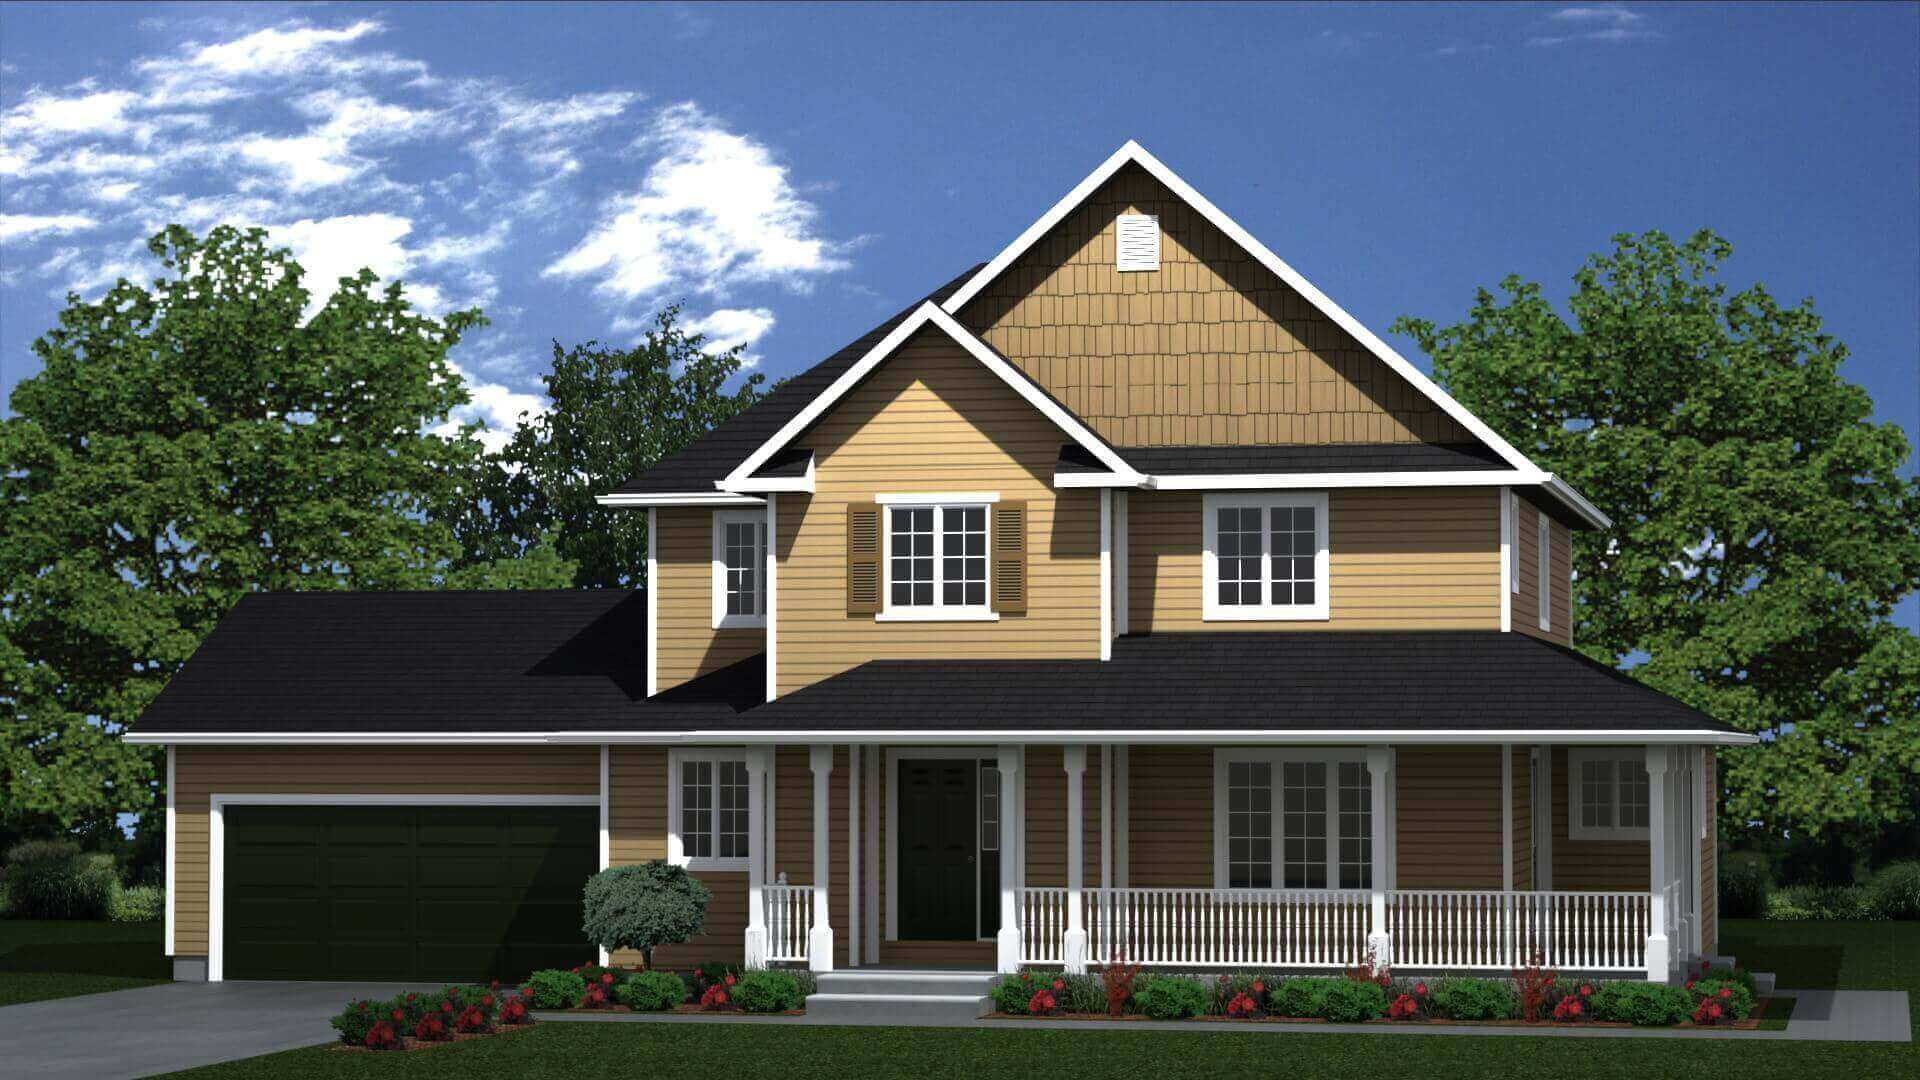 2125 sq.ft. timber mart house 3 bed 3 bath exterior render